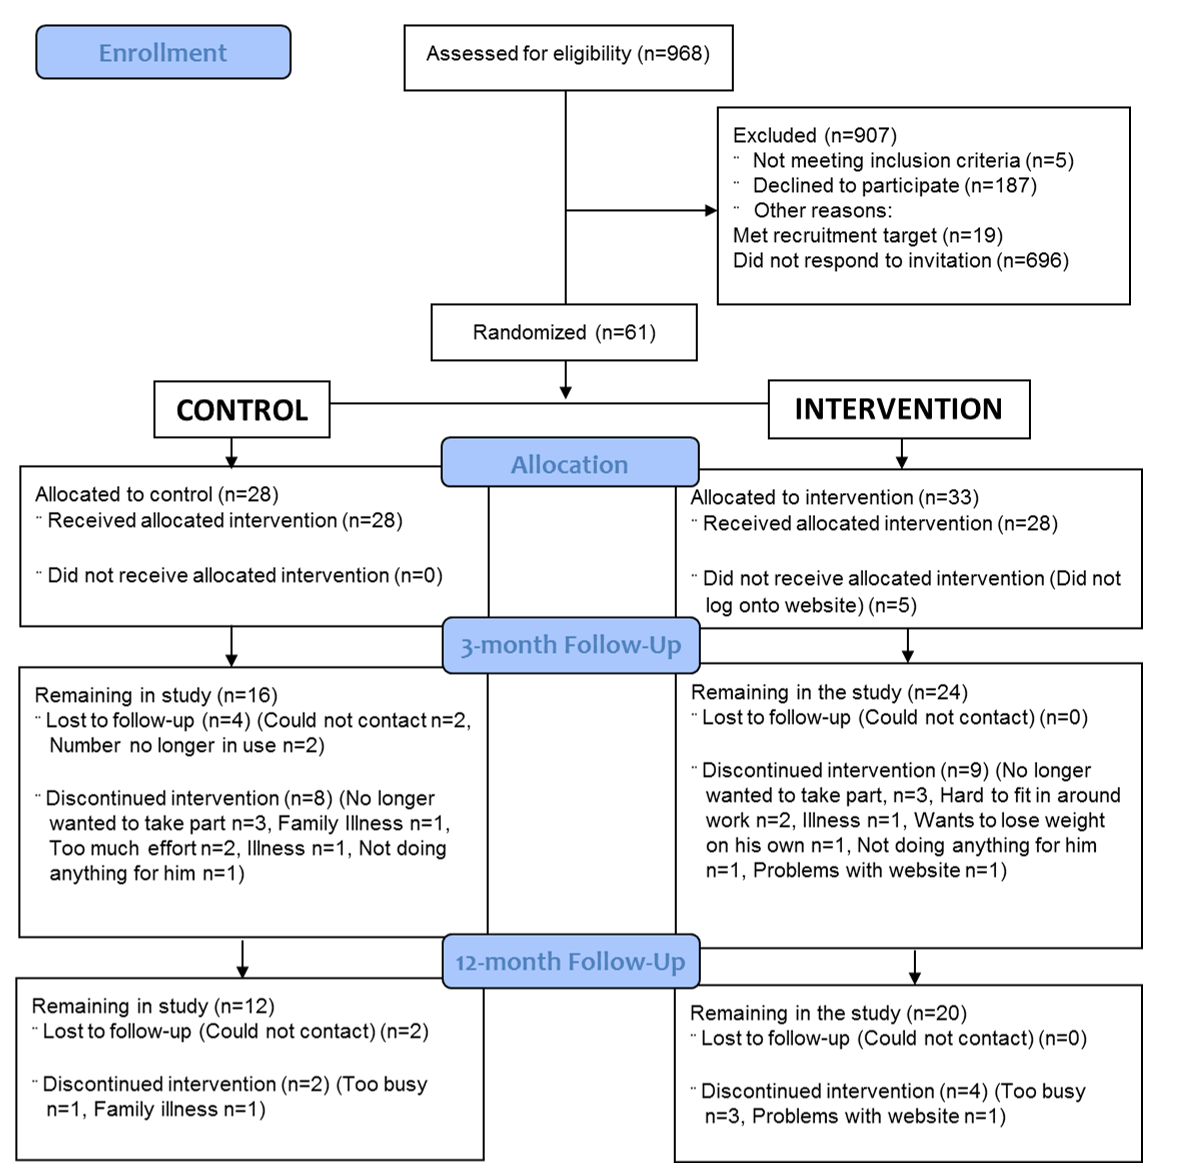 JD - Web-Based Weight Loss Intervention for Men With Type 2